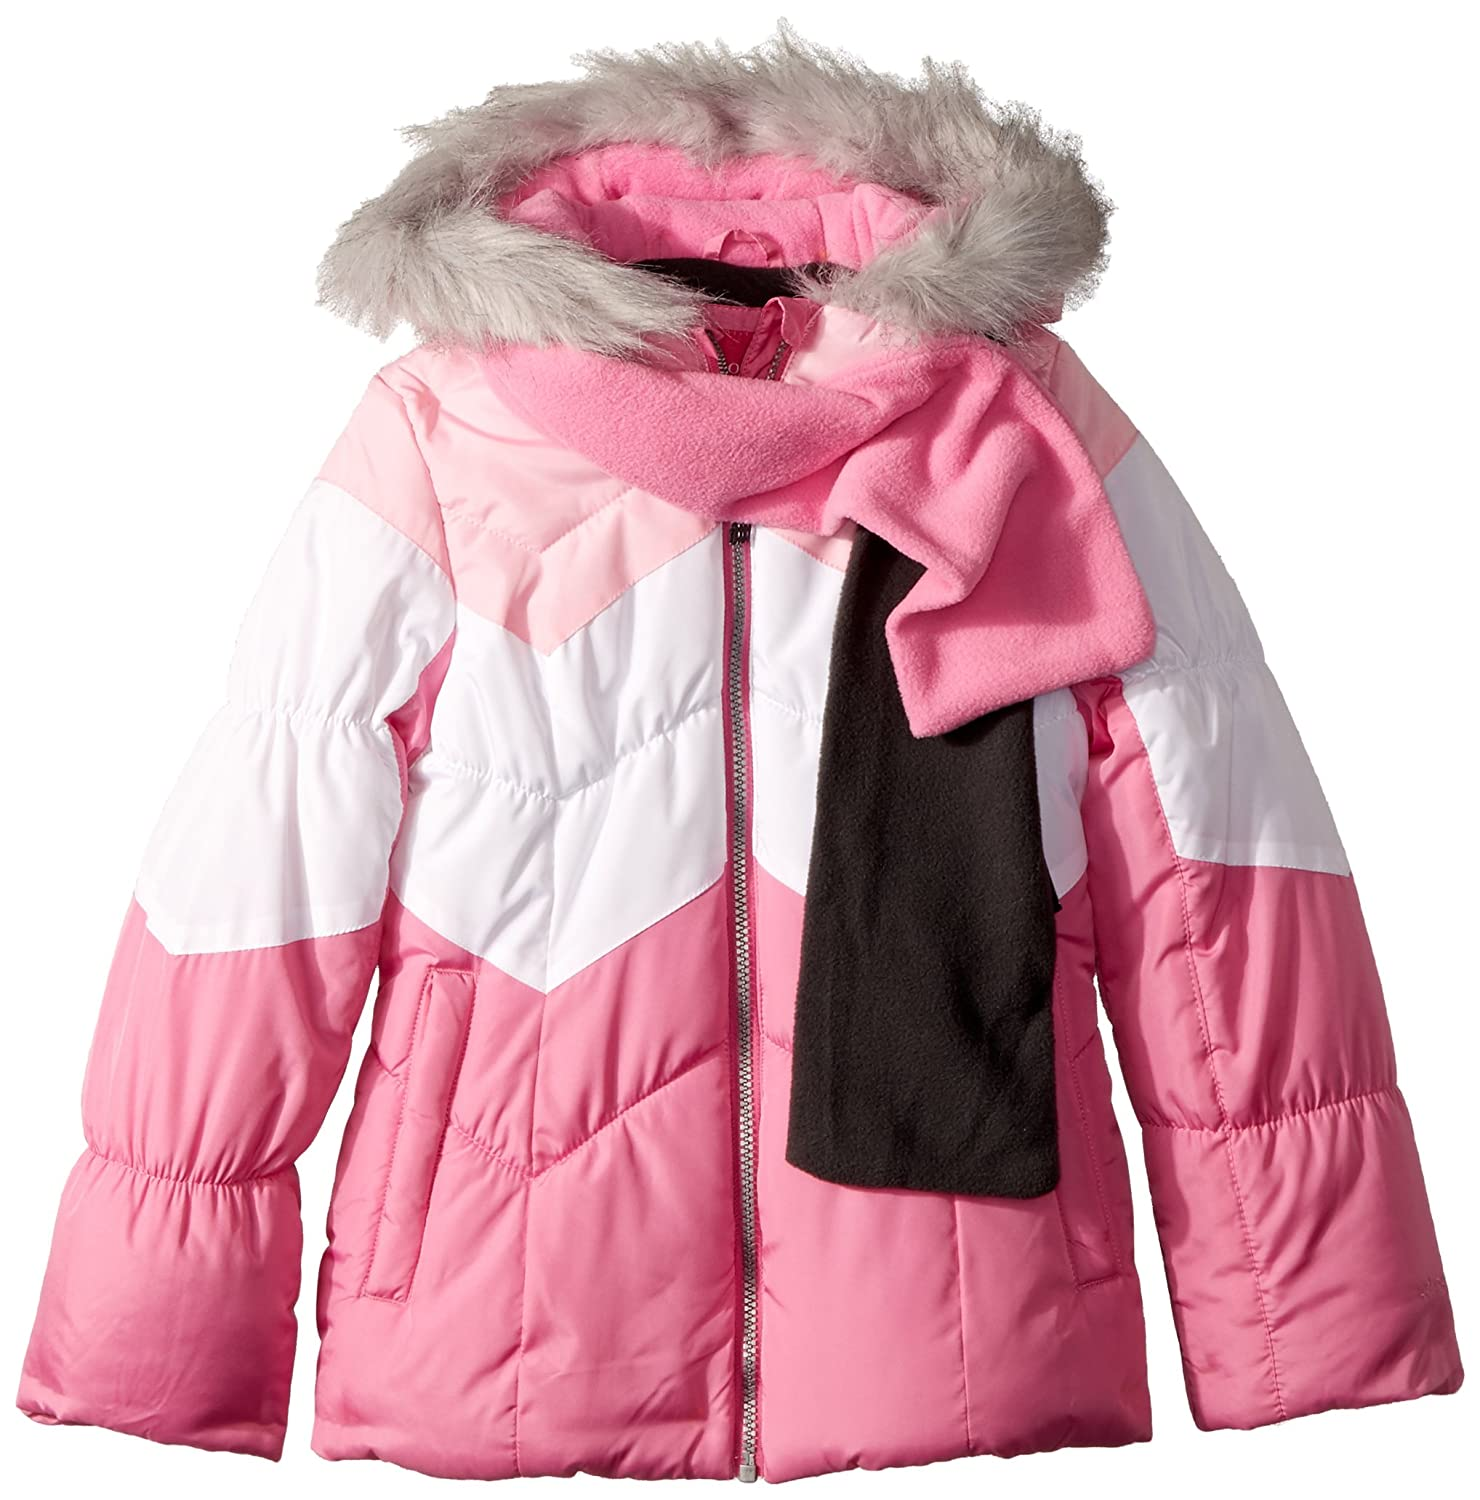 London Fog Girls' Big Color Blocked Puffer Jacket Coat with Scarf,